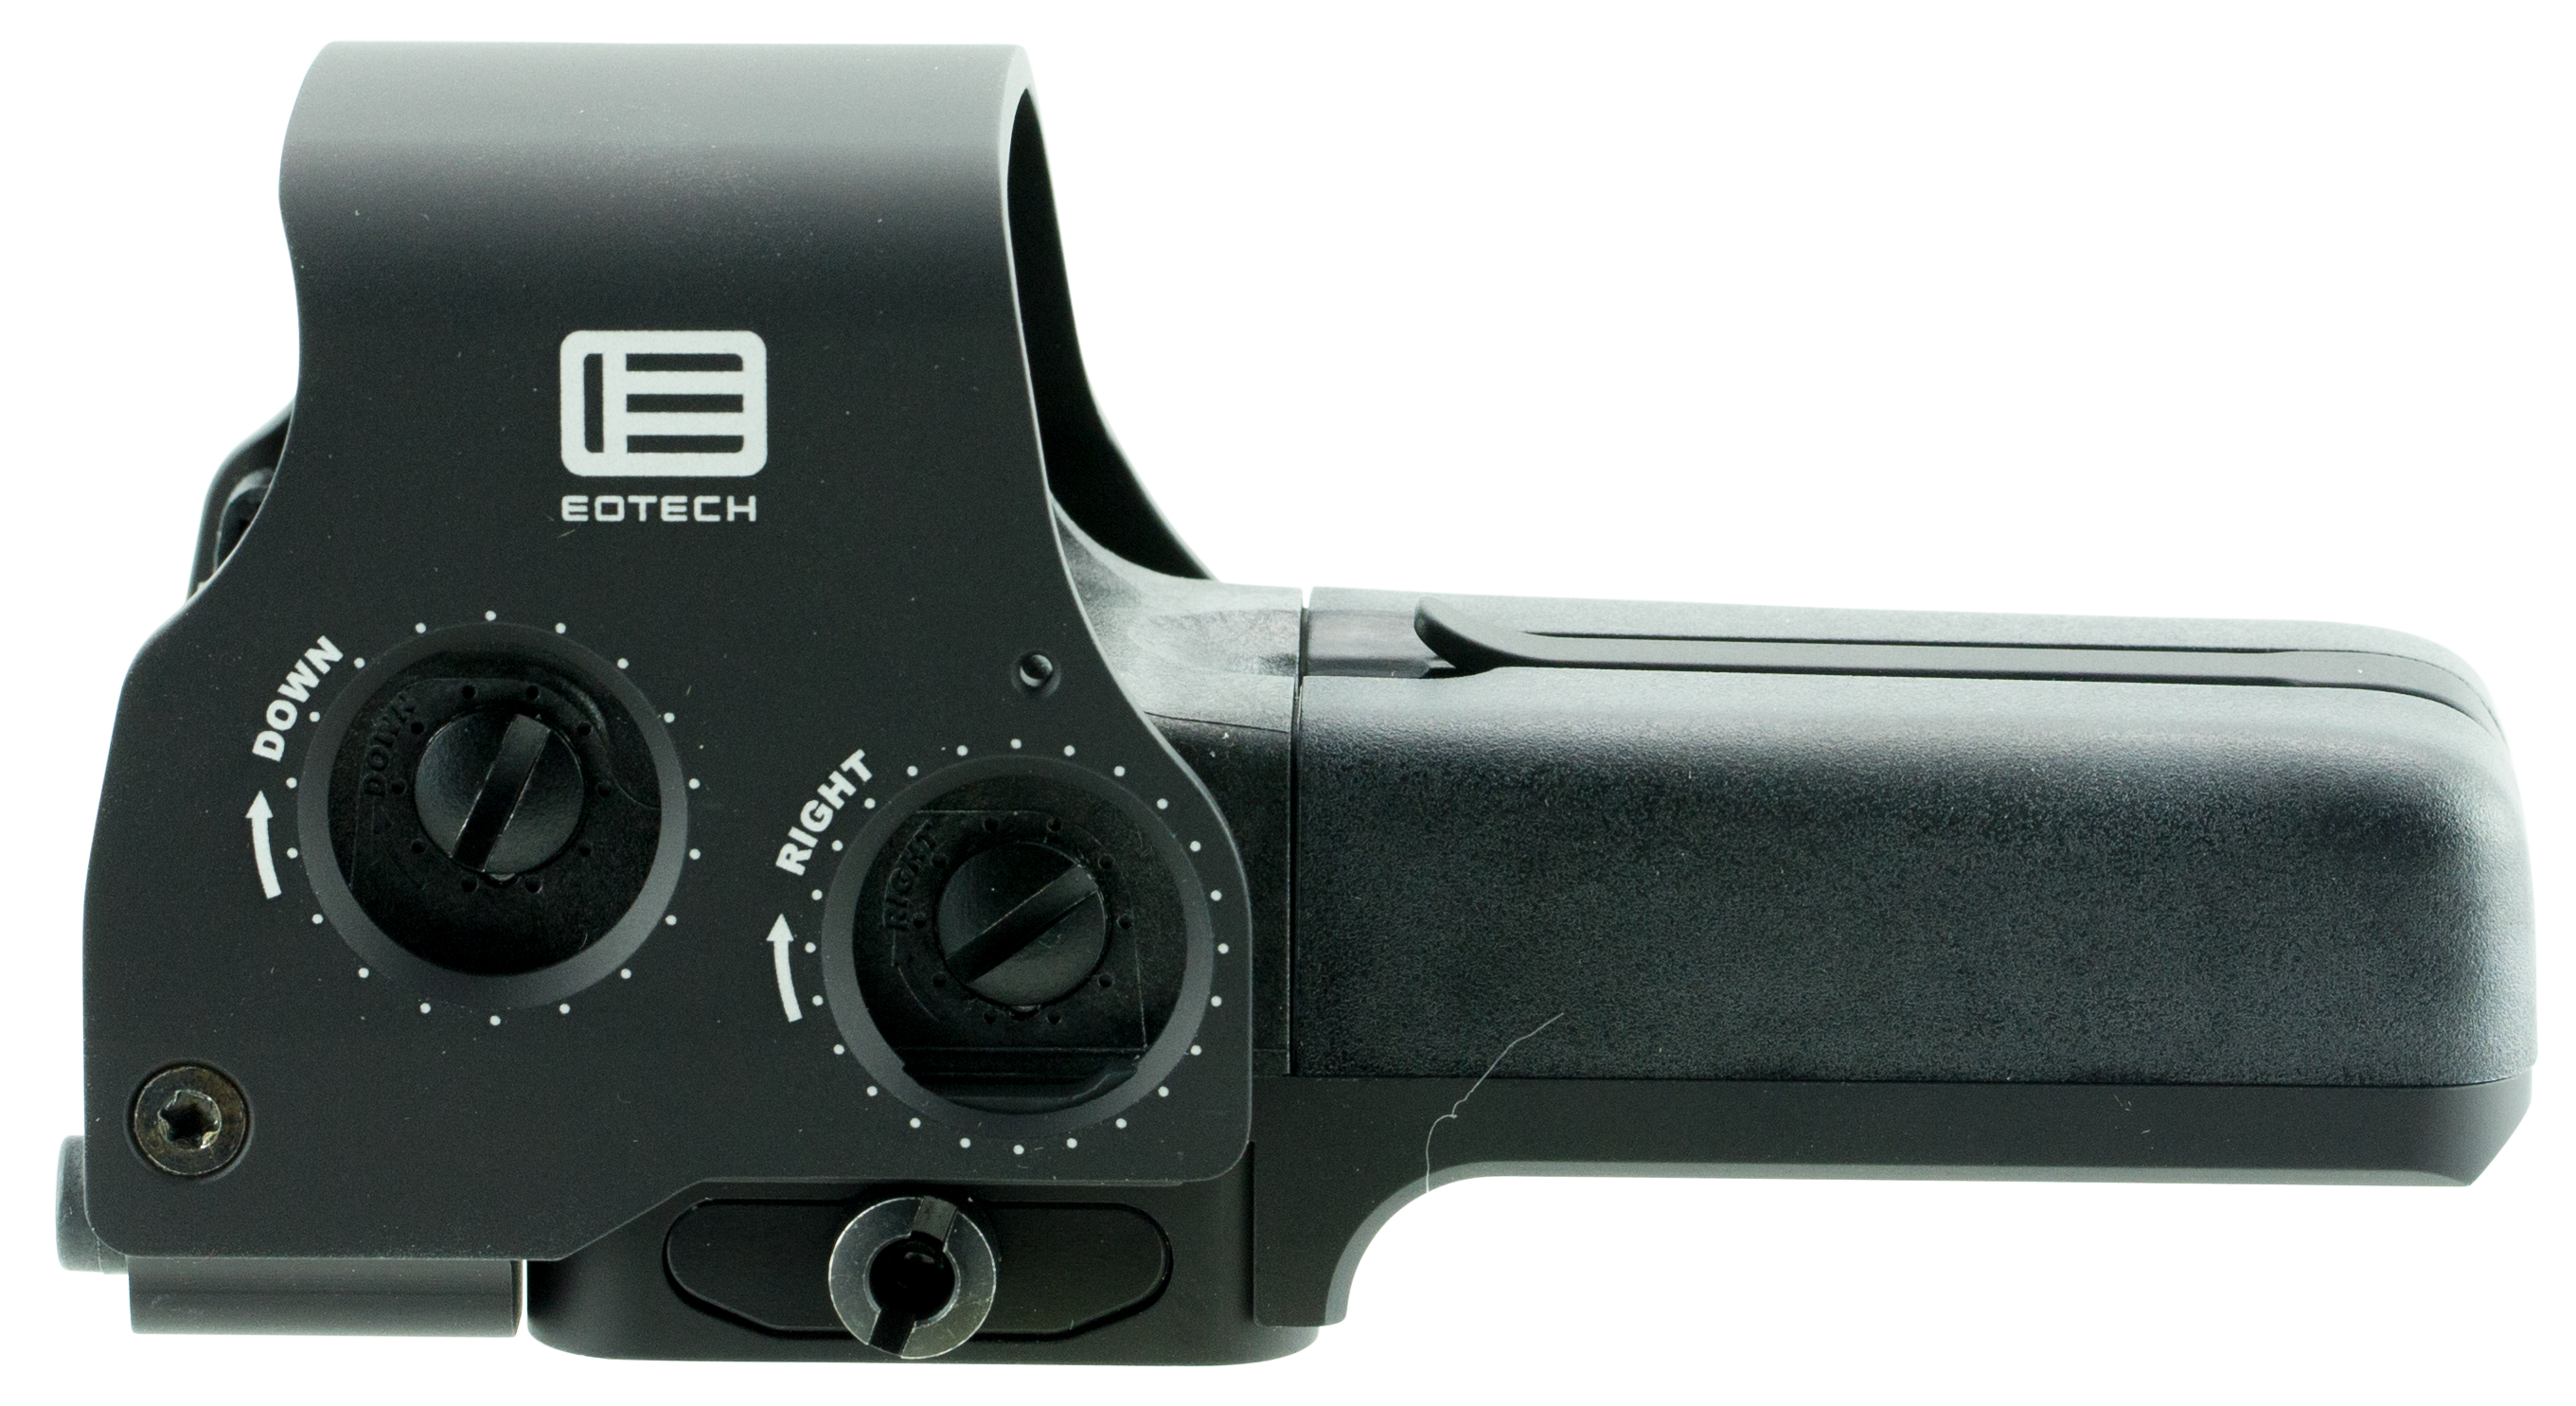 Eotech 5182 518 HWS 1x Unlimited Eye Relief 1 MOA Black 68 MOA Ring/2 Dots